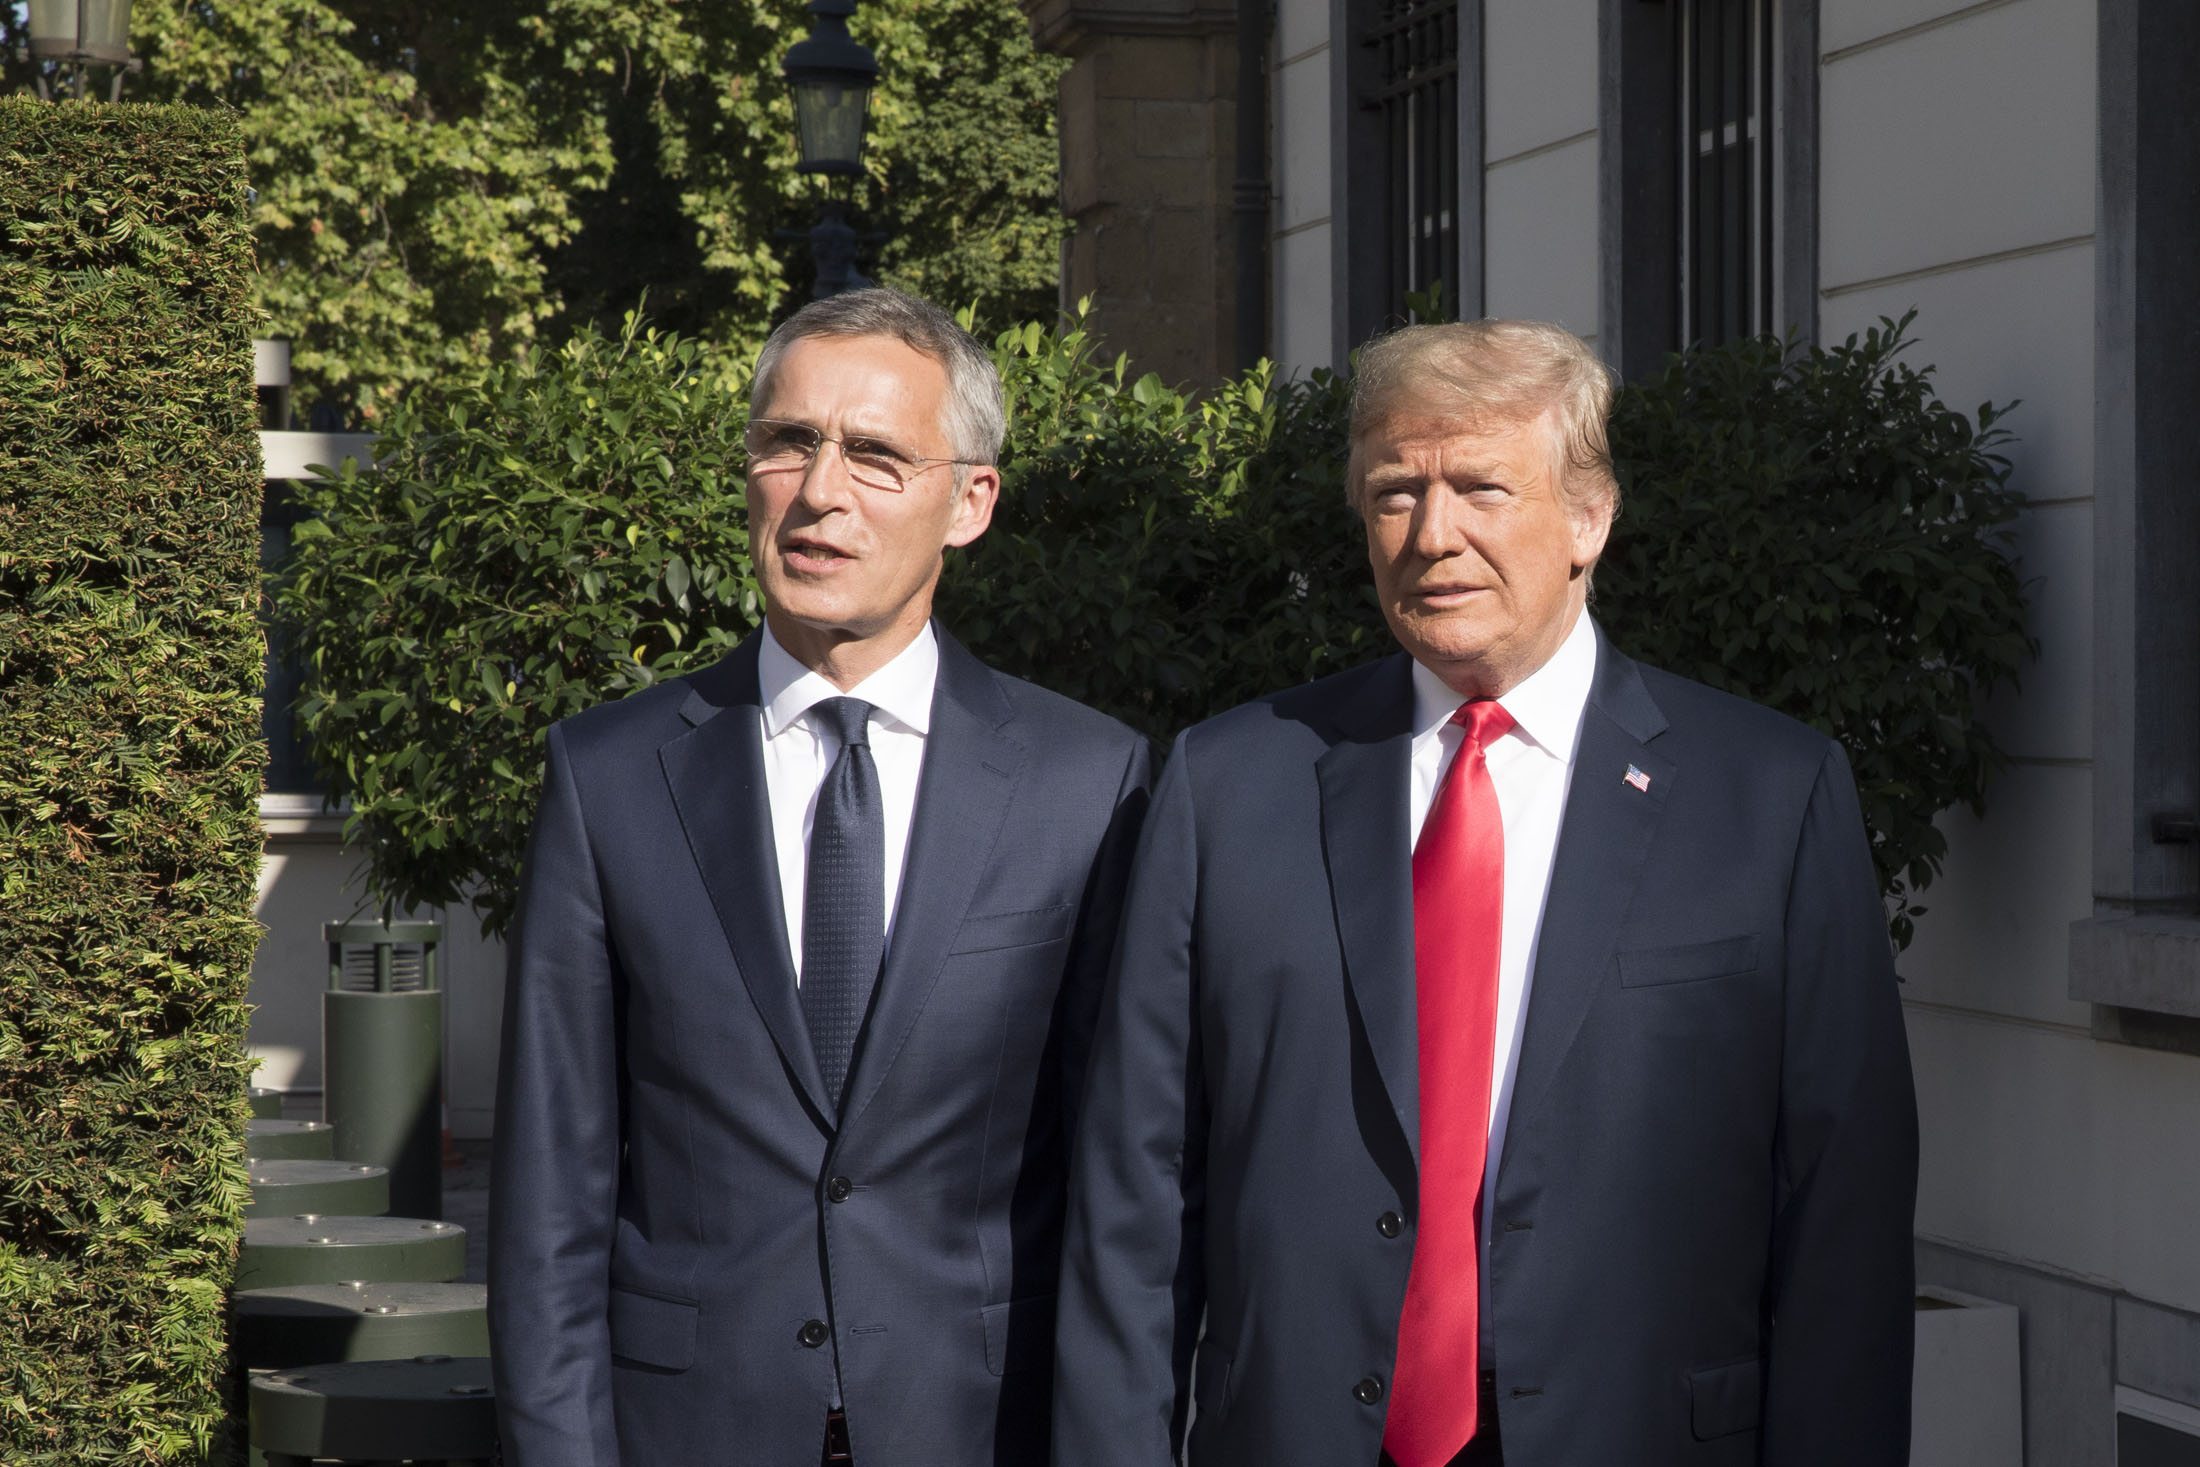 Left to right: NATO Secretary General Jens Stoltenberg with US President Donald Trump